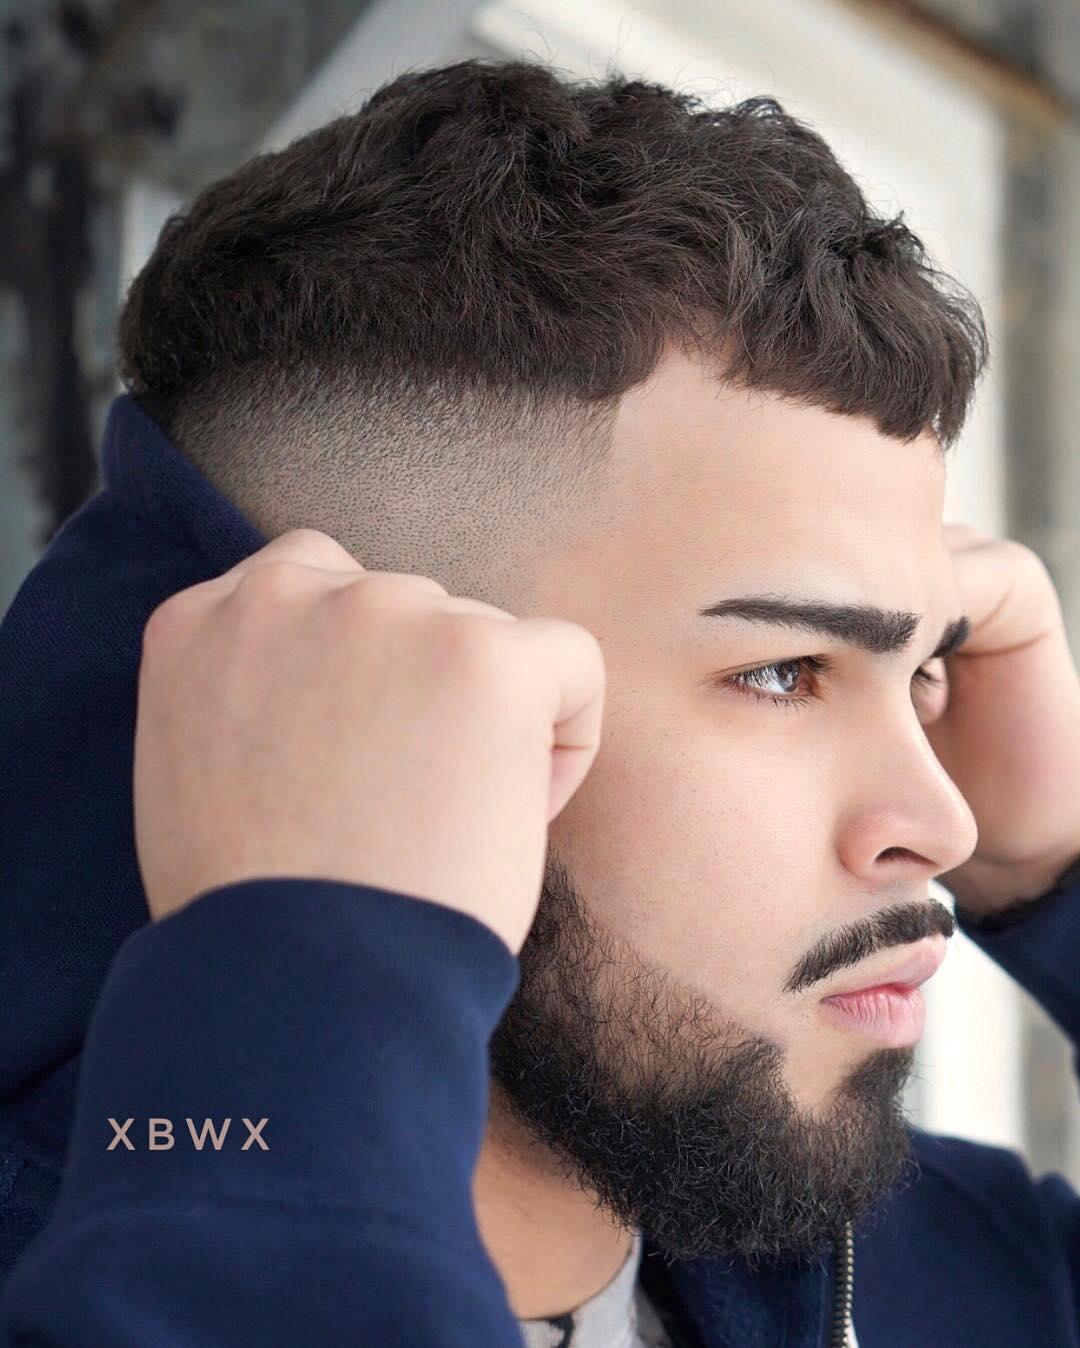 xbigwesx cool short haircuts for men crop haircut